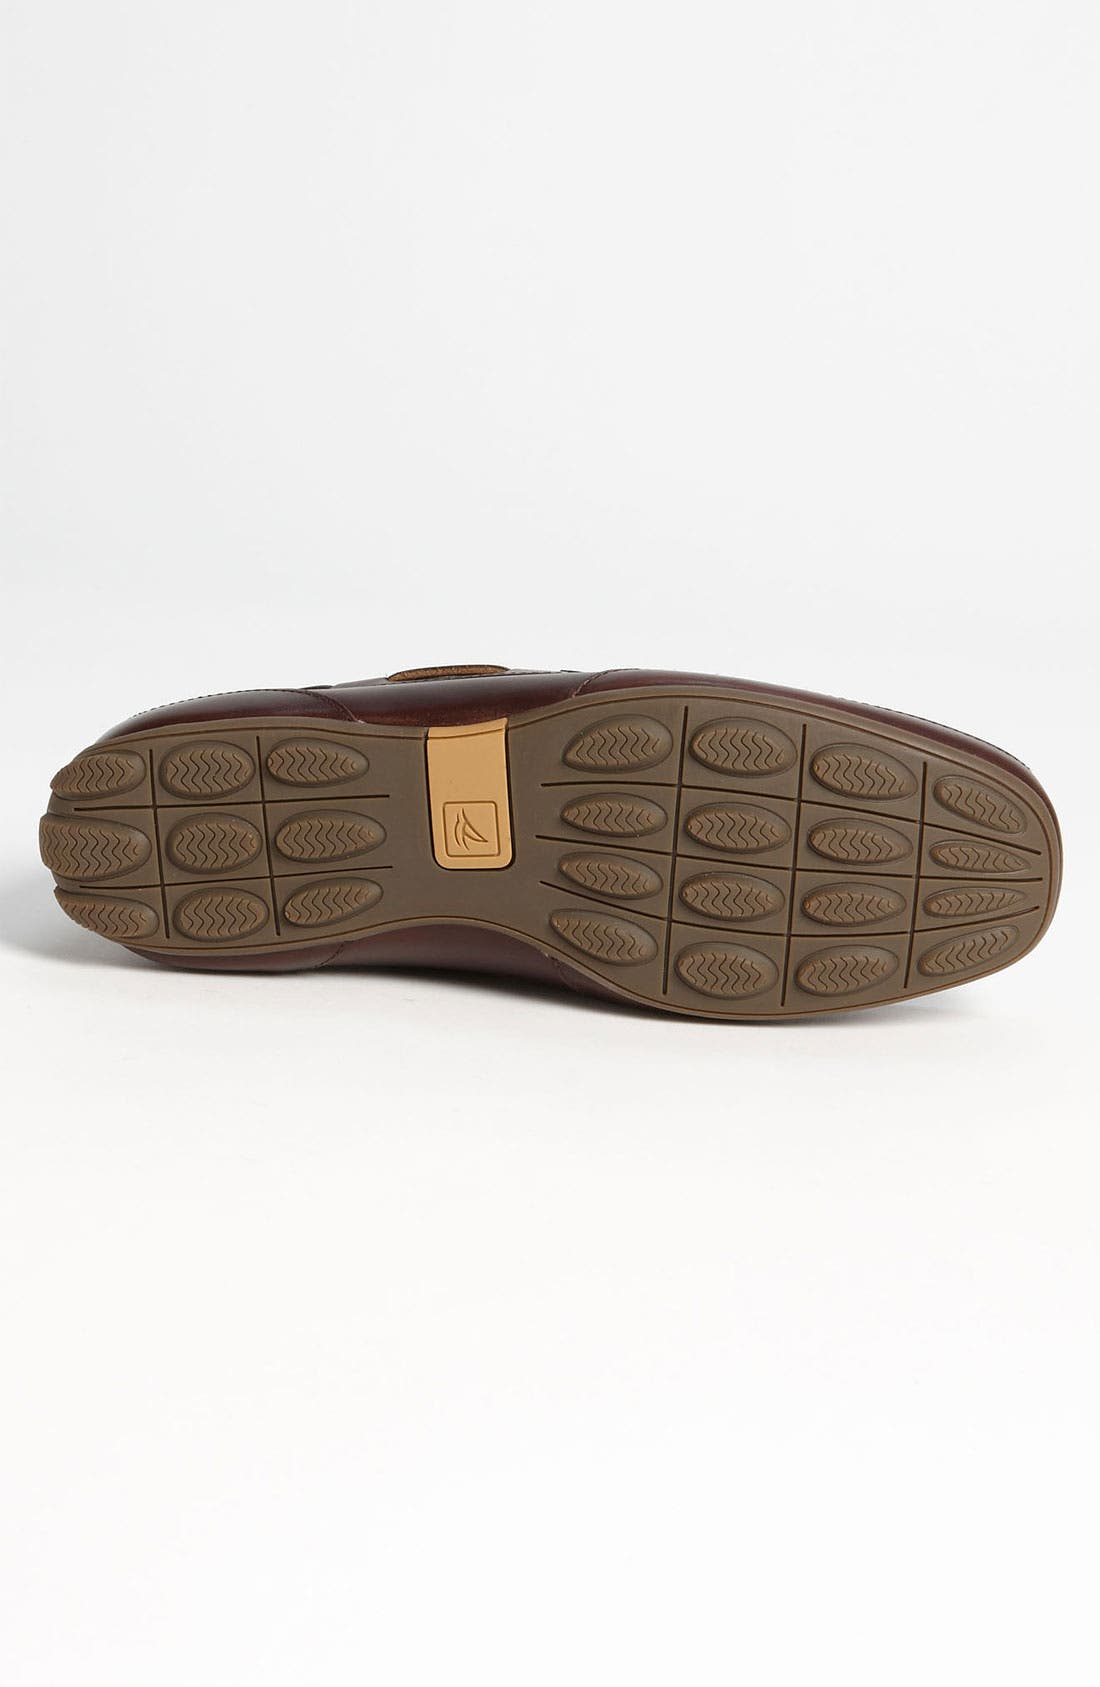 Top-Sider<sup>®</sup> 'Navigator Venetian' Driving Shoe,                             Alternate thumbnail 4, color,                             Amaretto